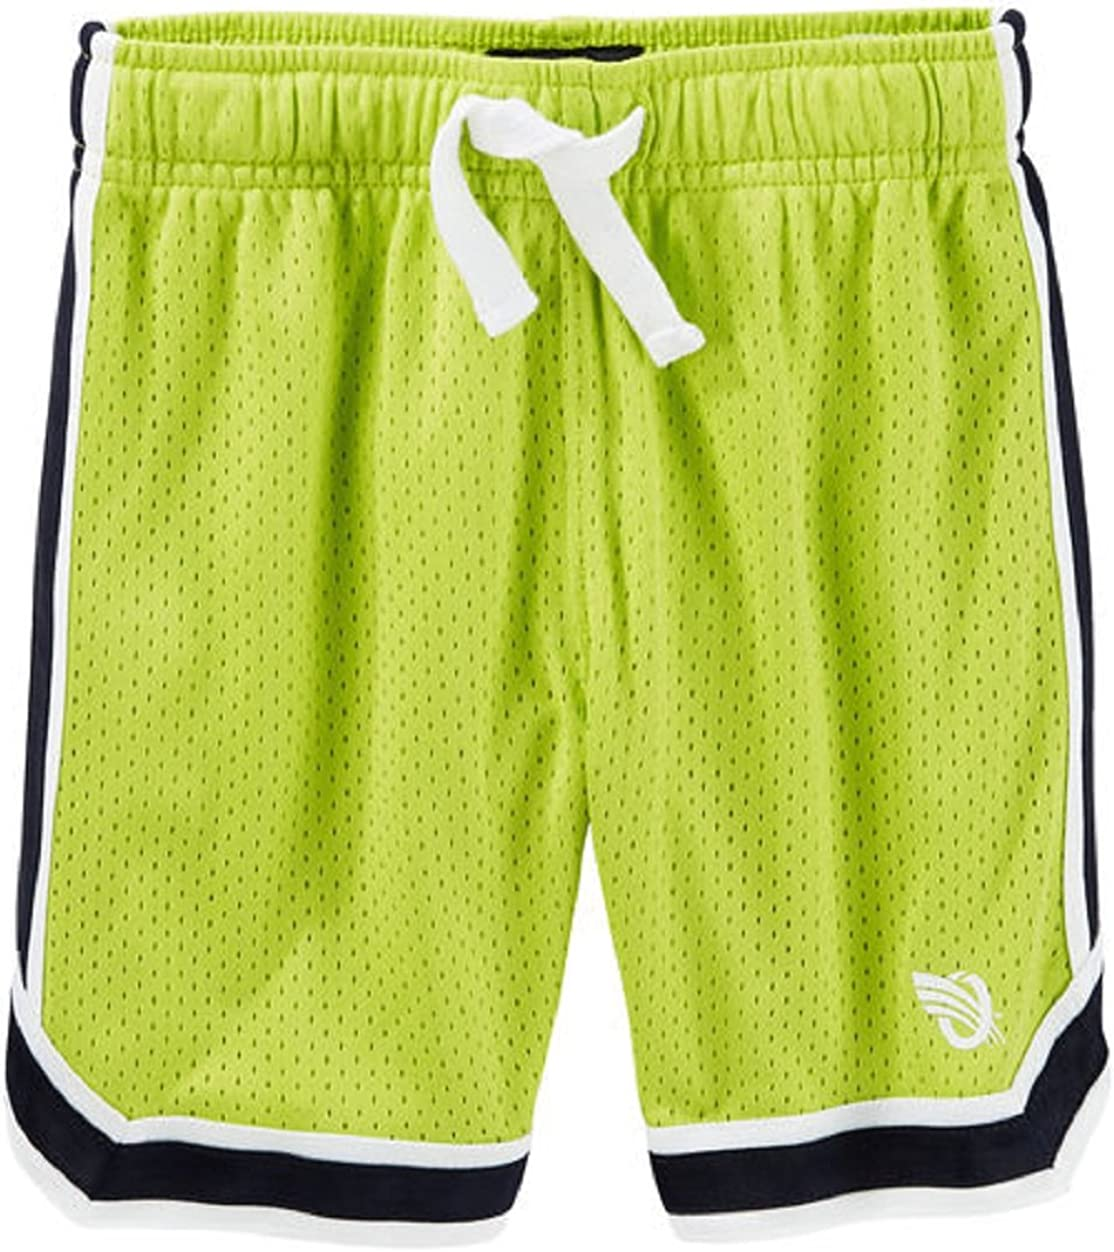 6 Months OshKosh BGosh Baby Boys Mesh Shorts Yellow